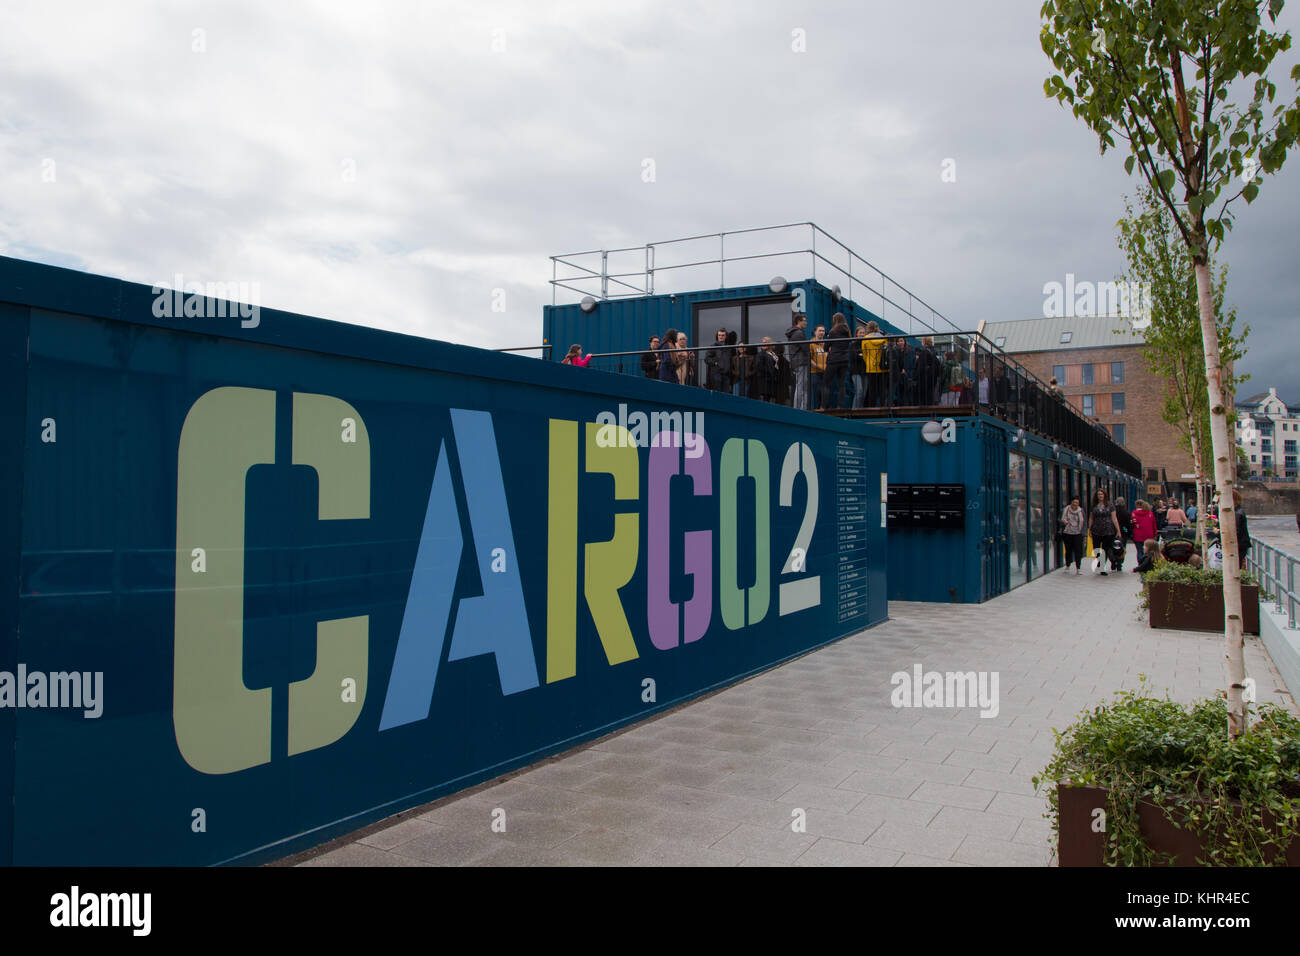 CARGO2: Container shops in Bristol - Stock Image